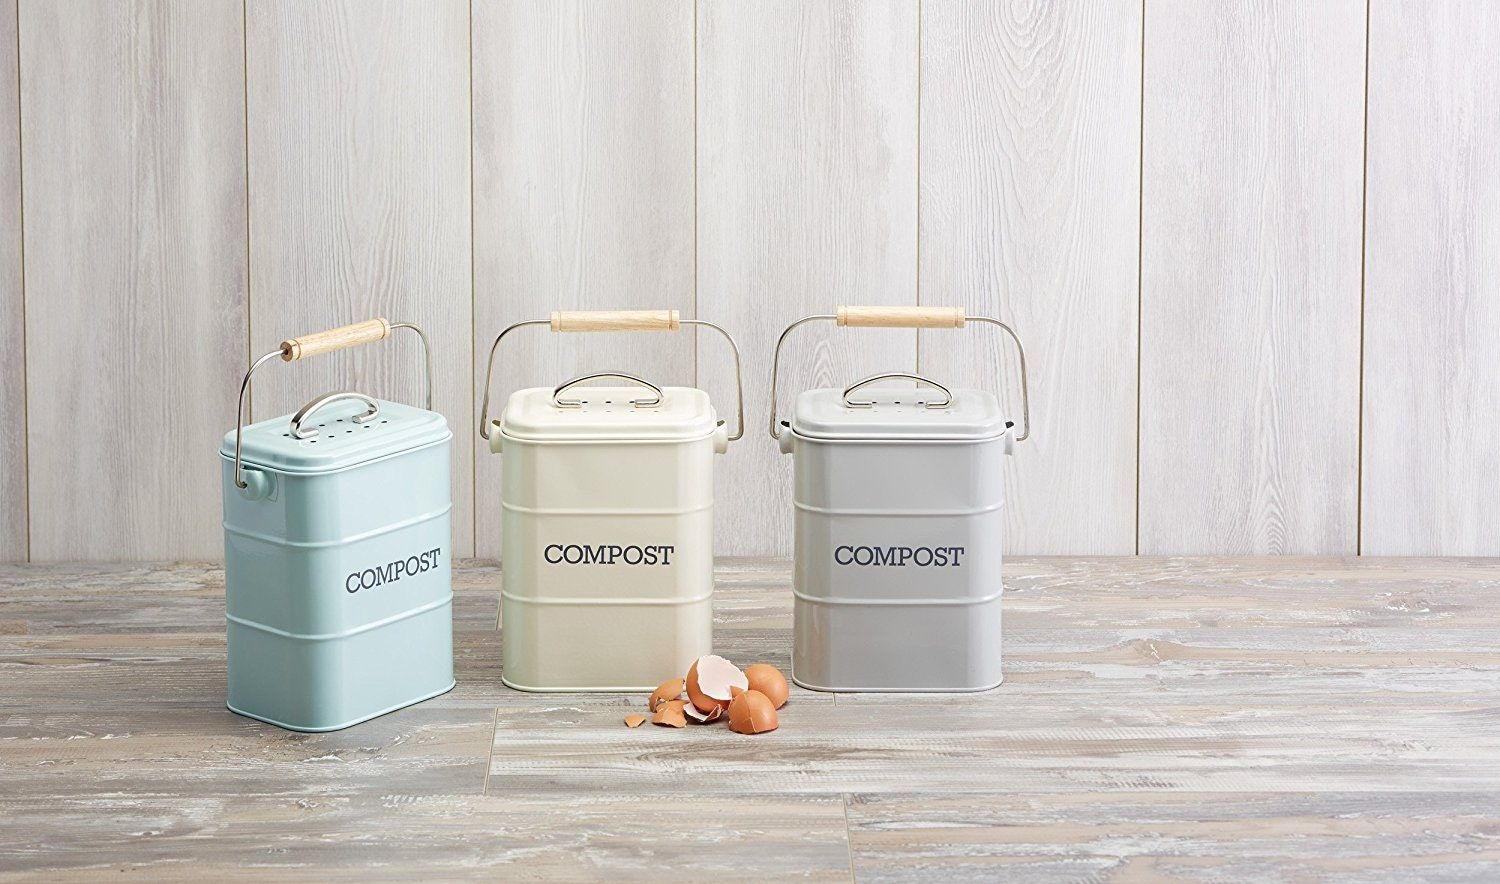 7 Compact Good Looking Indoor Composting Bins For Your Kitchen